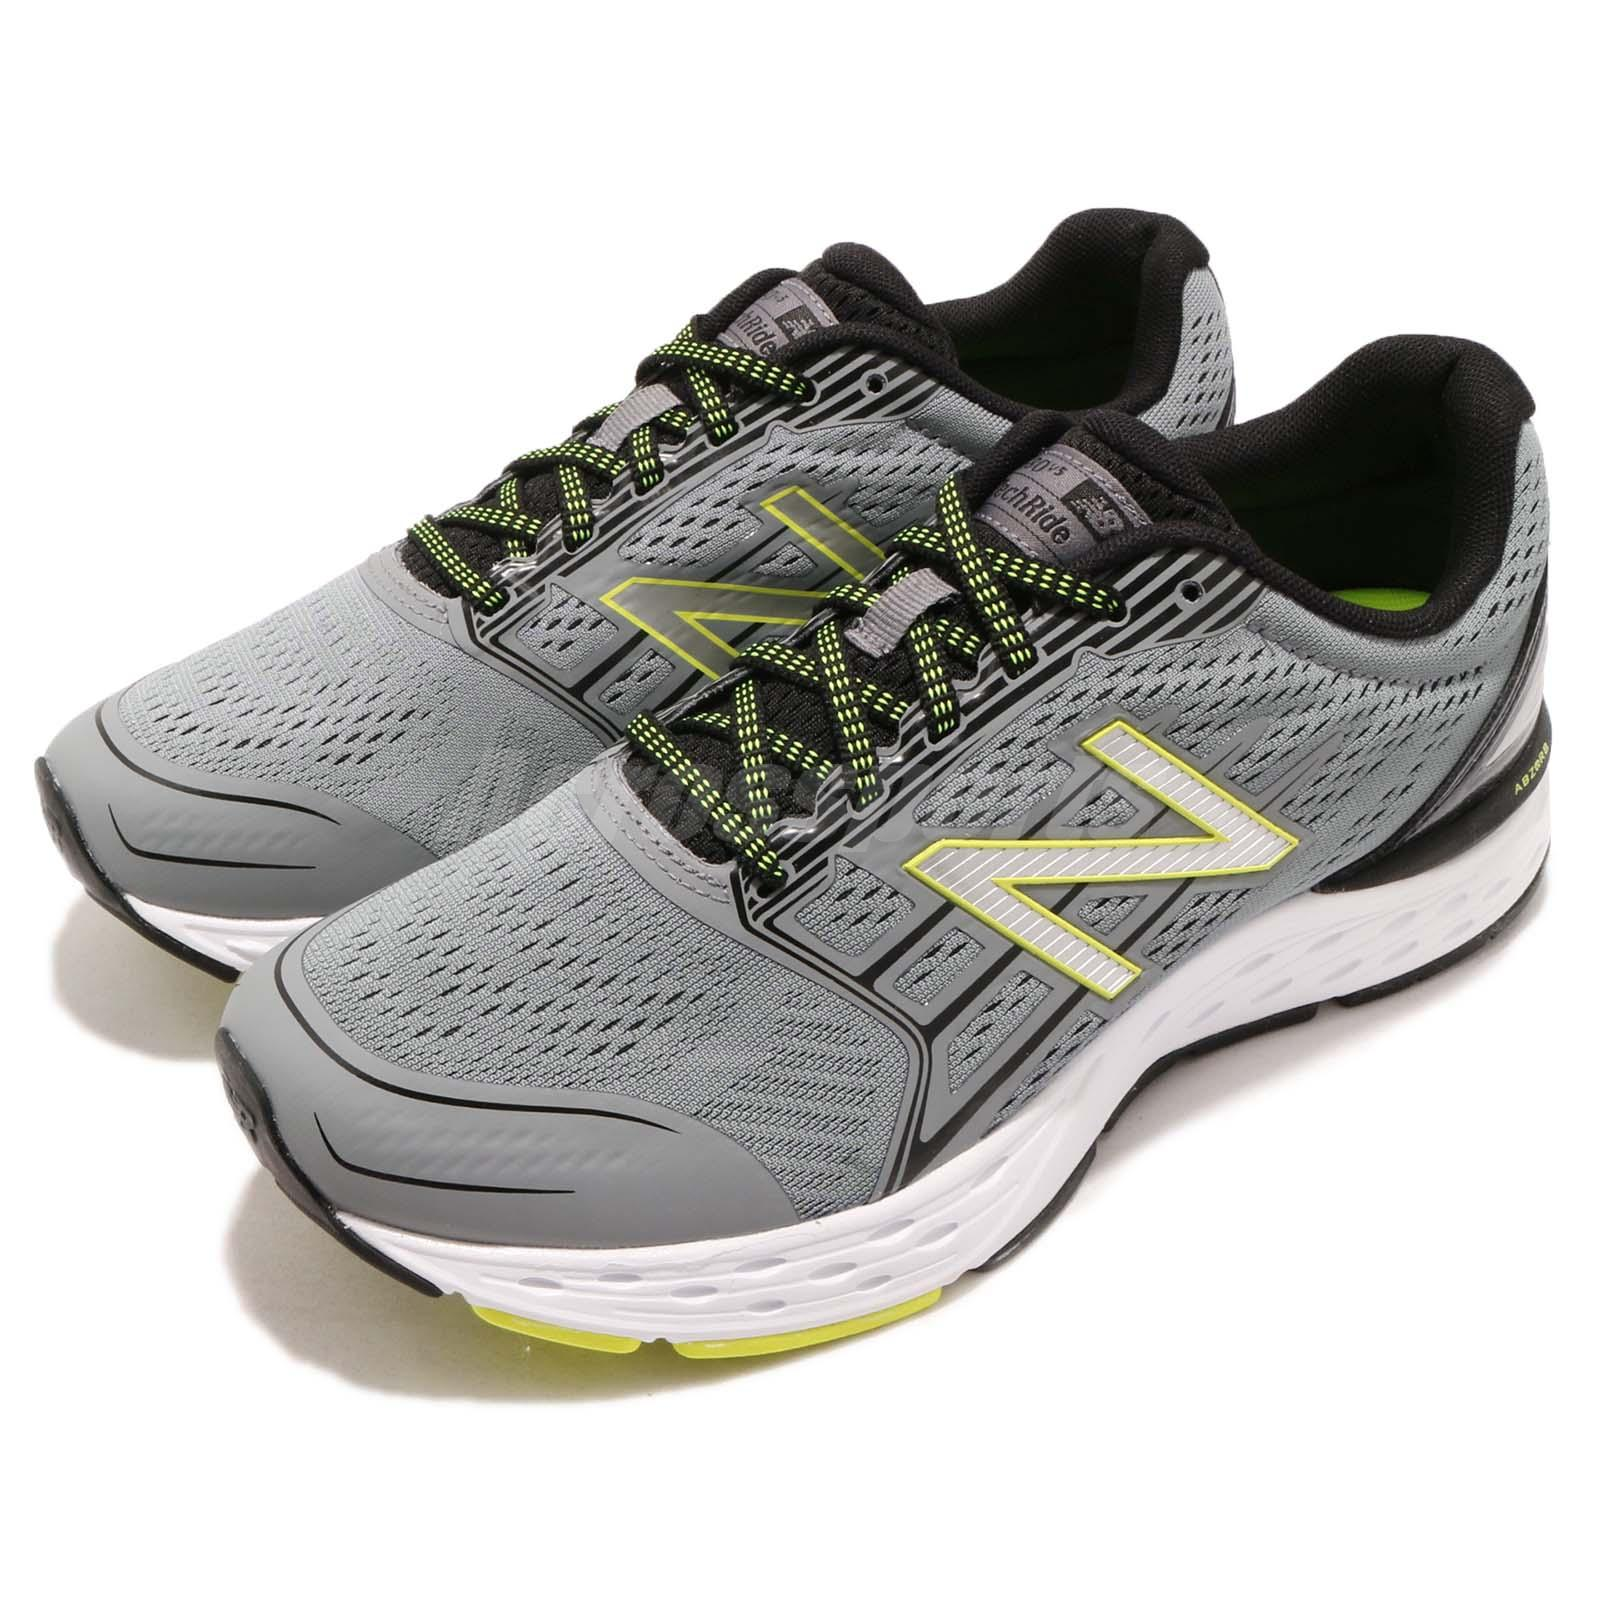 739409af05d80 Details about New Balance M680CG5 2E Wide Grey Volt White Men Running Shoes  Sneakers M680CG52E